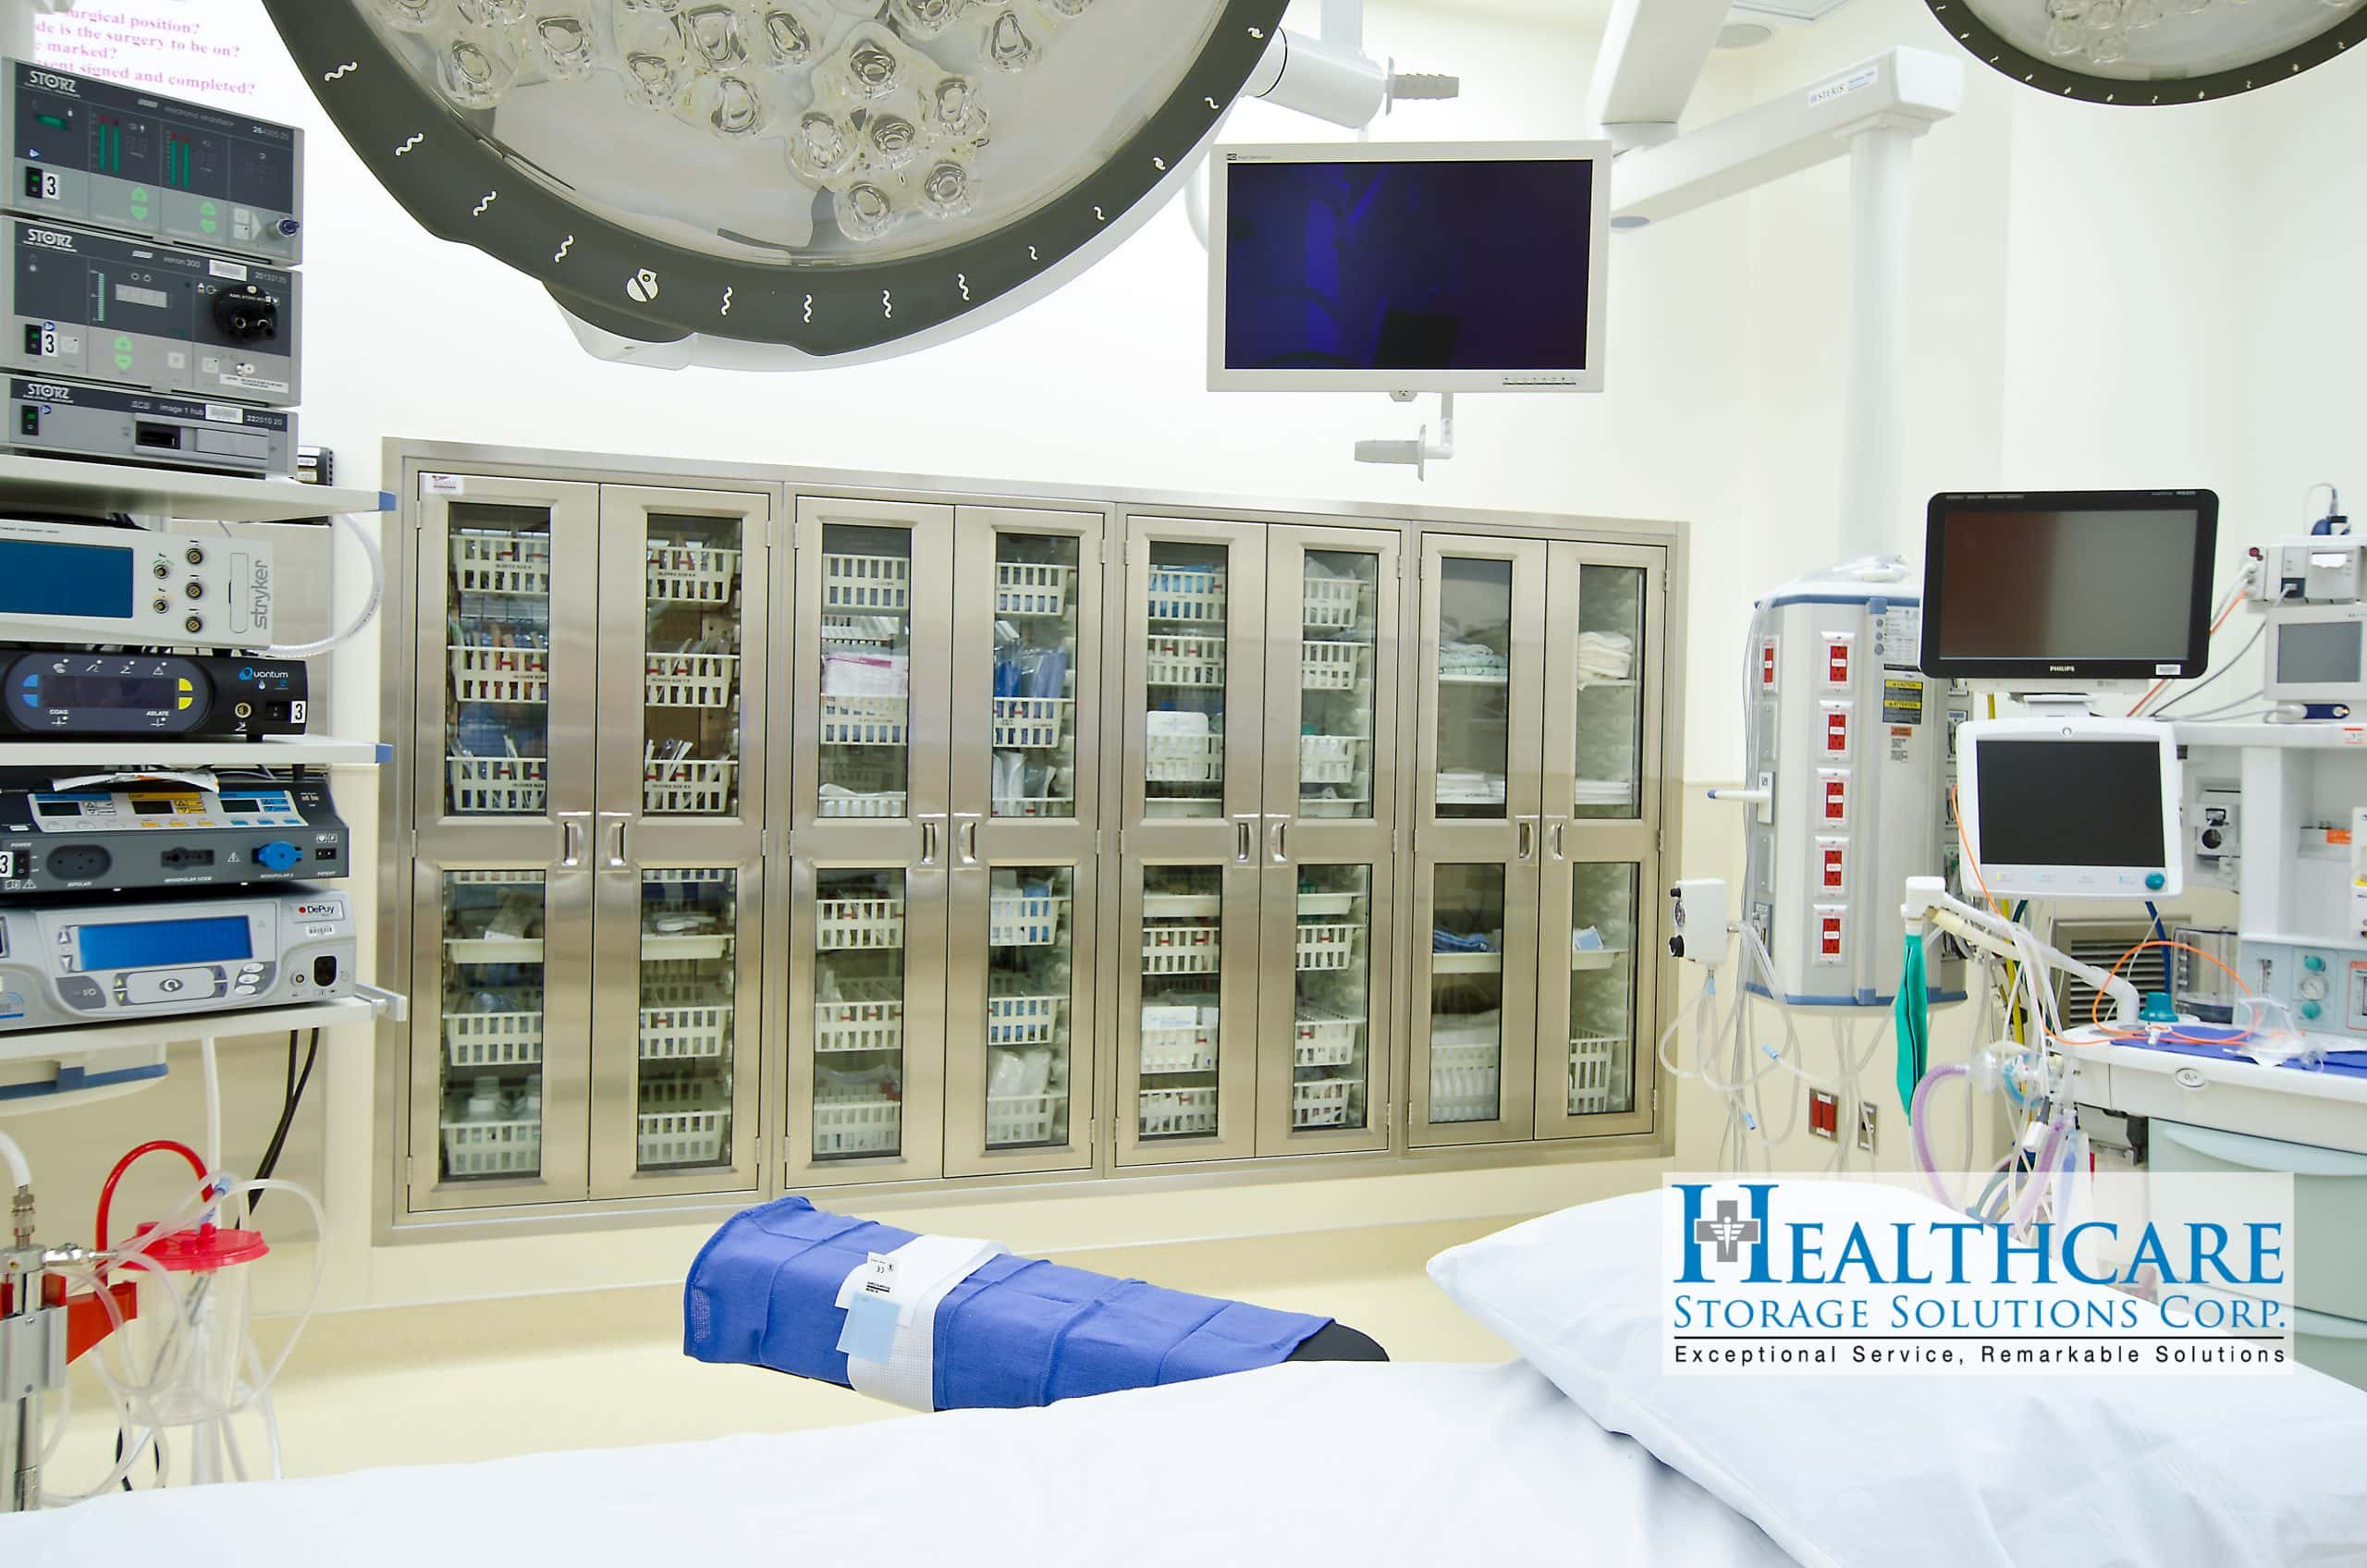 Image shows an operating room suite with high-density stainless steel cabinets.